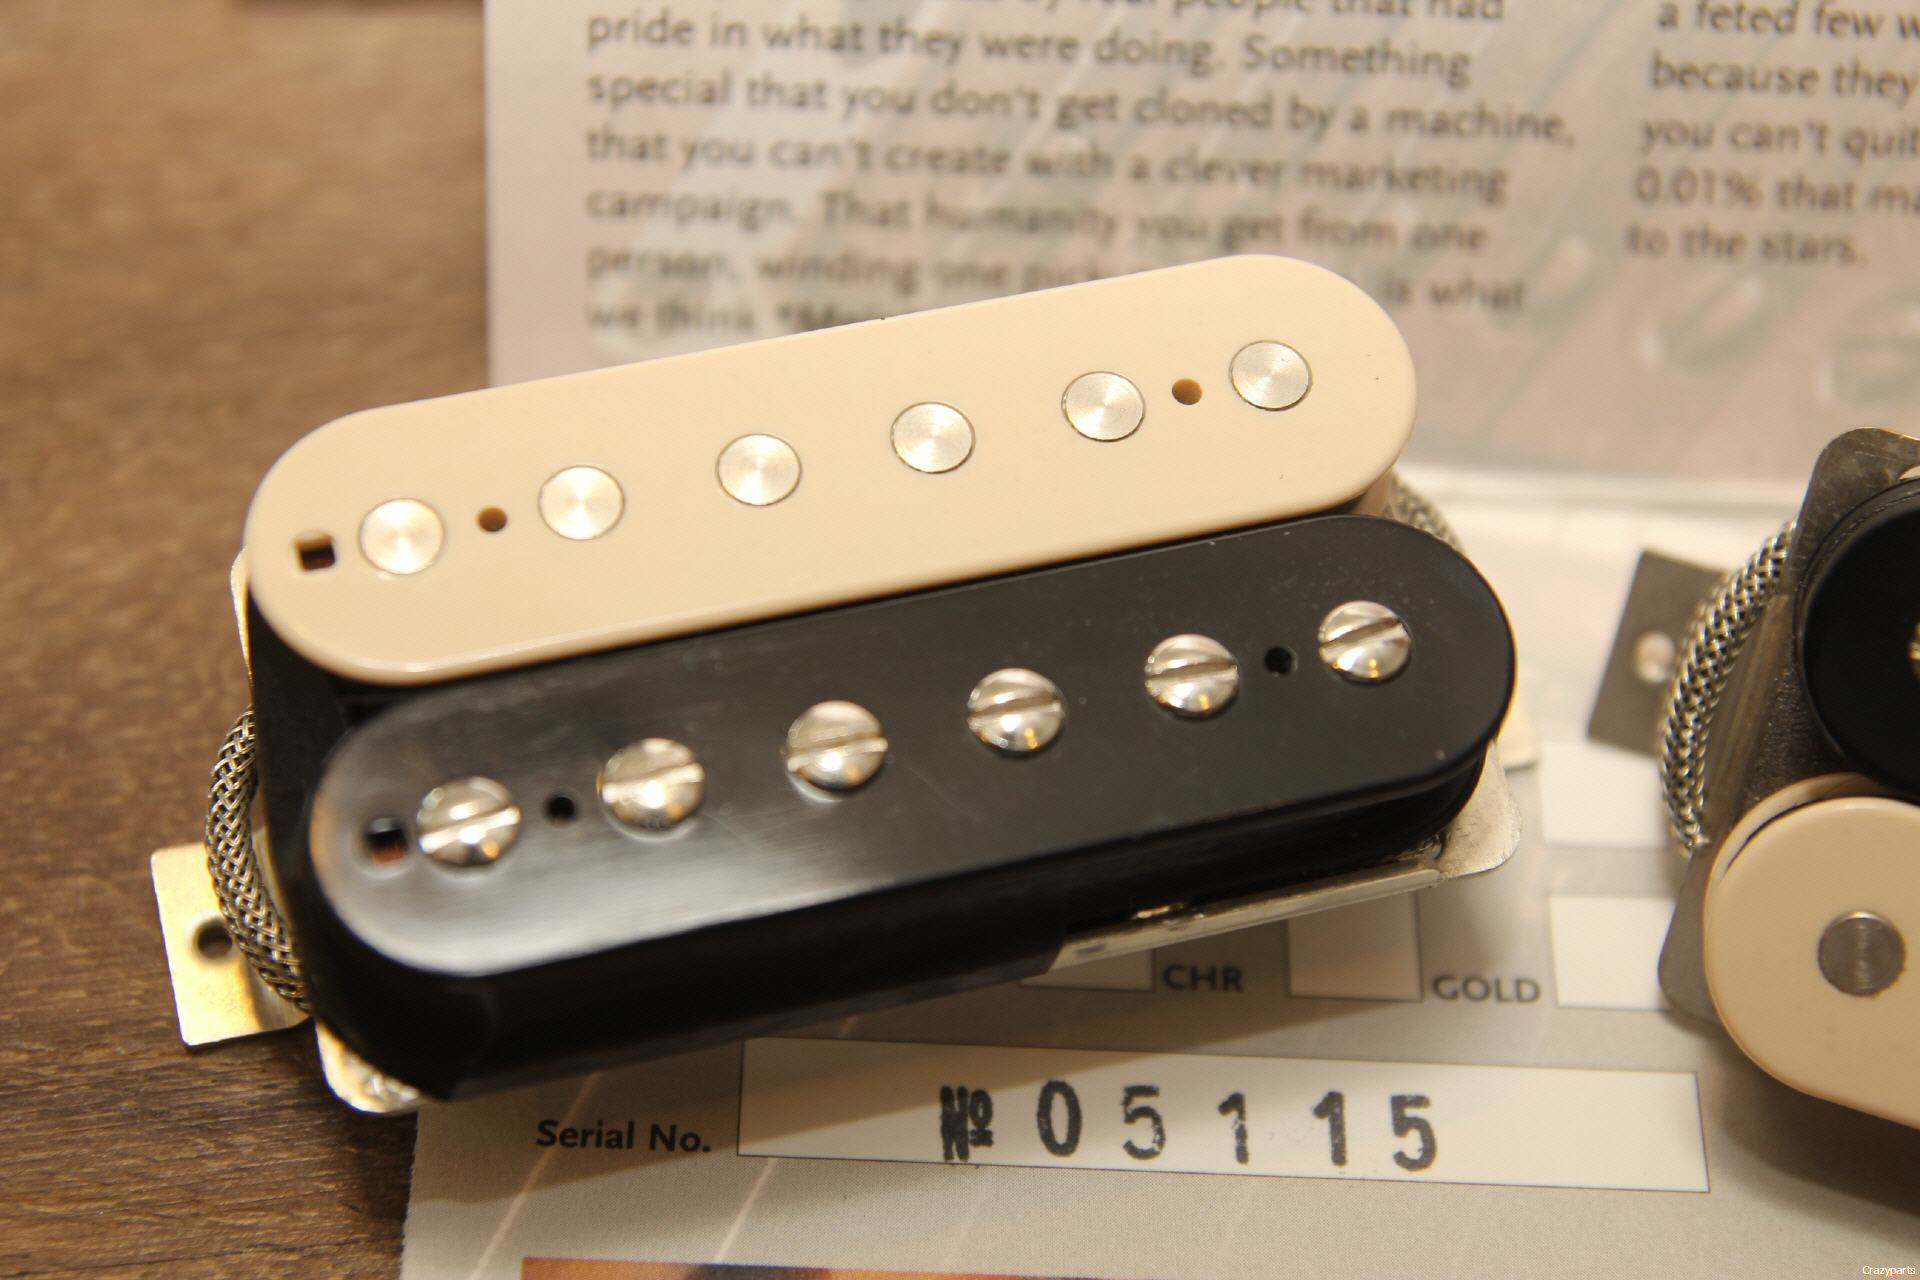 Patno Paf Set Zebra 1961 Gibson P90 Pickups Original Electronics And Wiring Harness No Humbucker Pickup Is The Final Development Of Our Well Known Series We Go One Step Further In Direction Real Vintage Tone